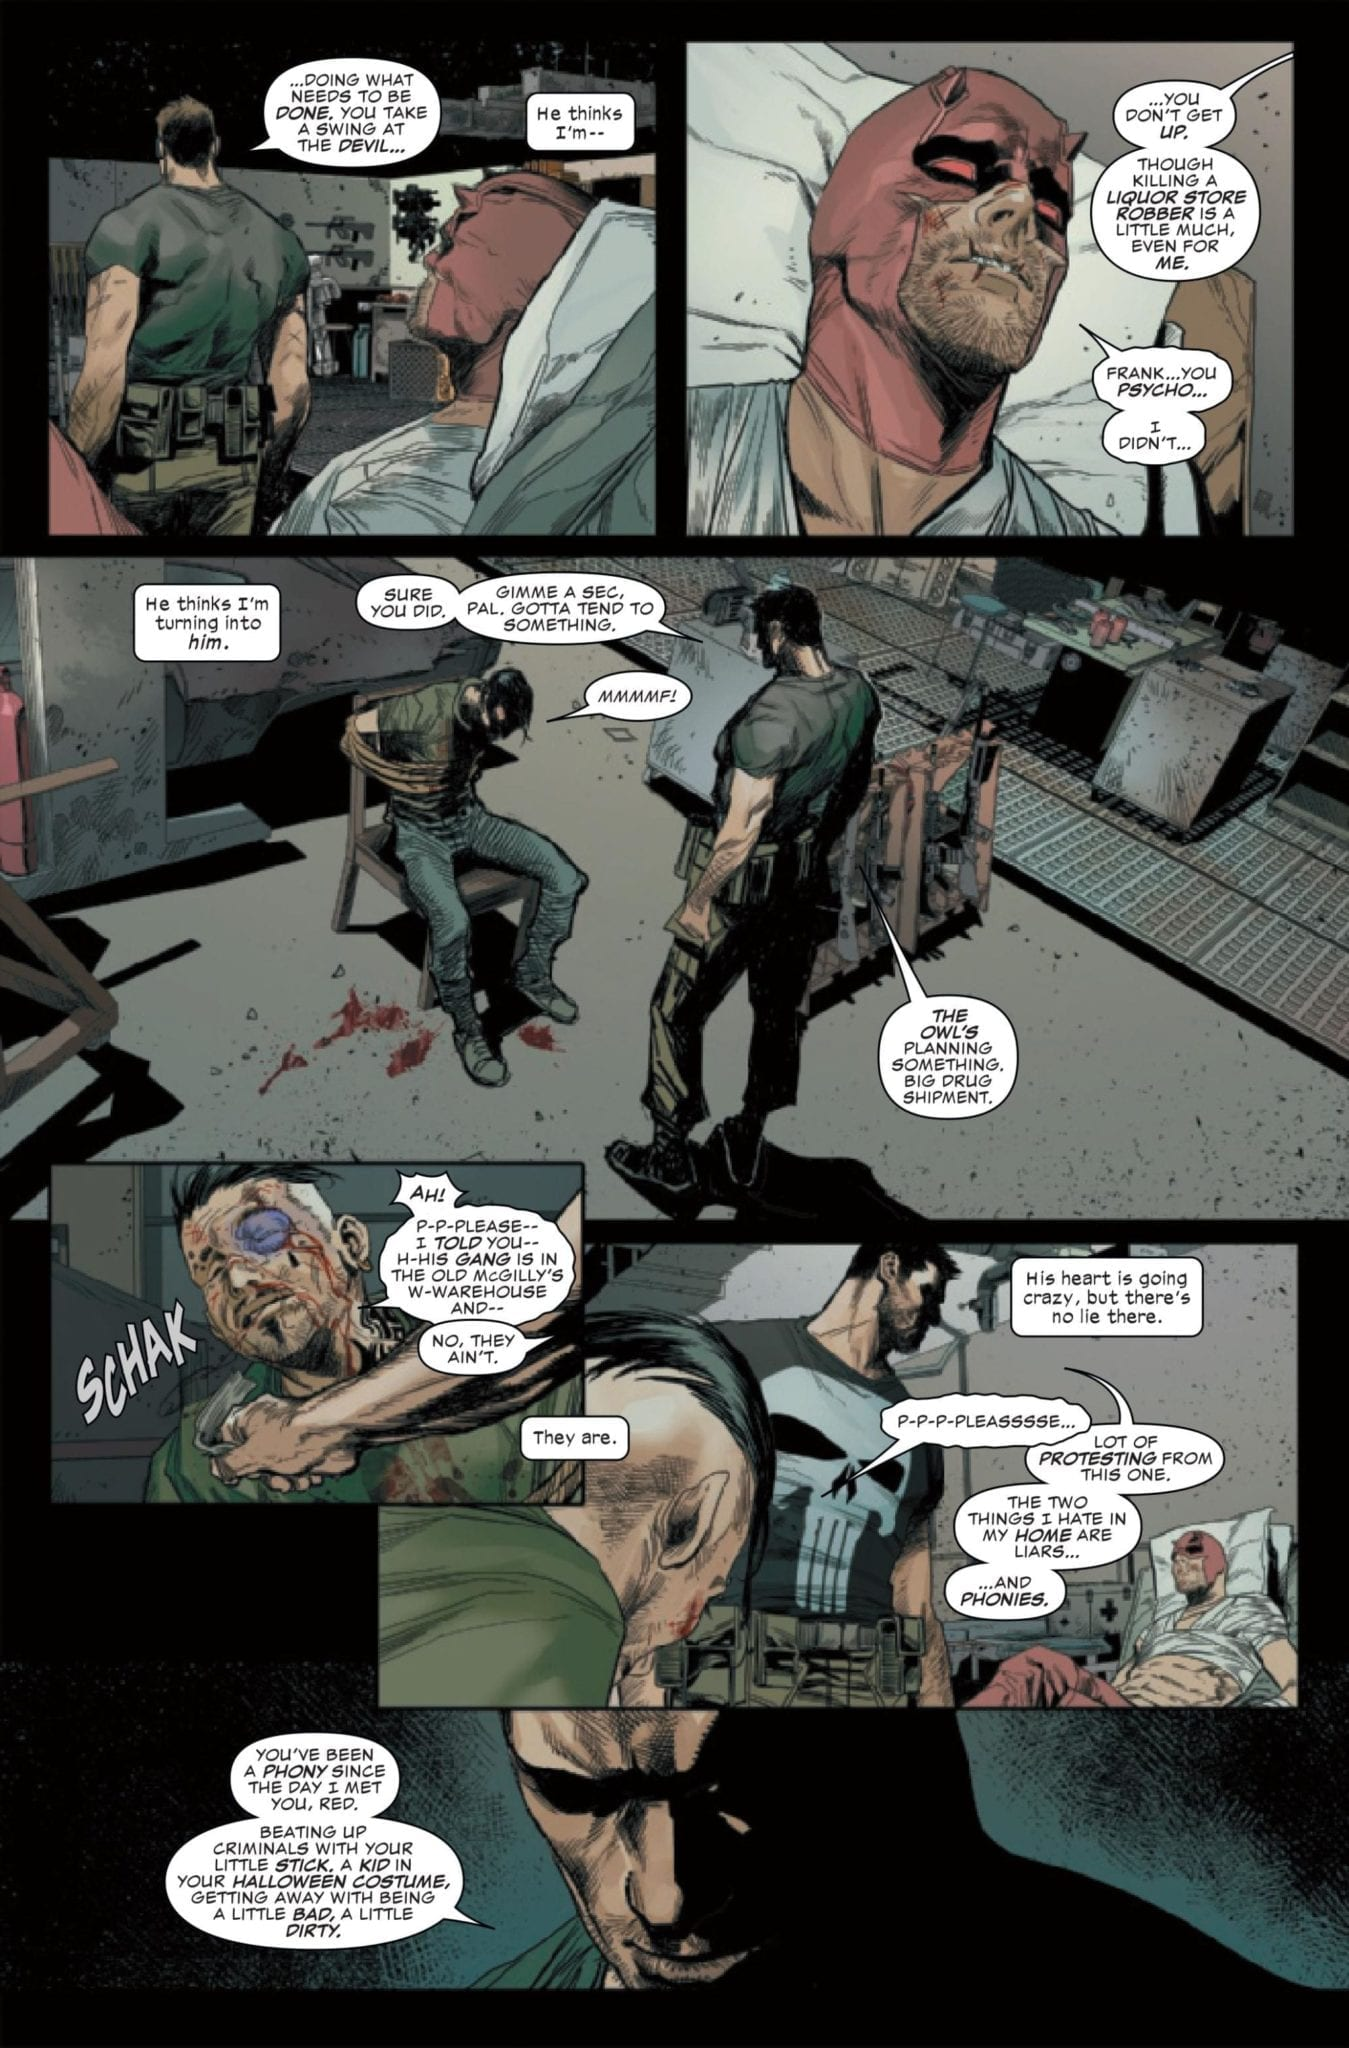 Frank Castle confronts Matt Murdock 2